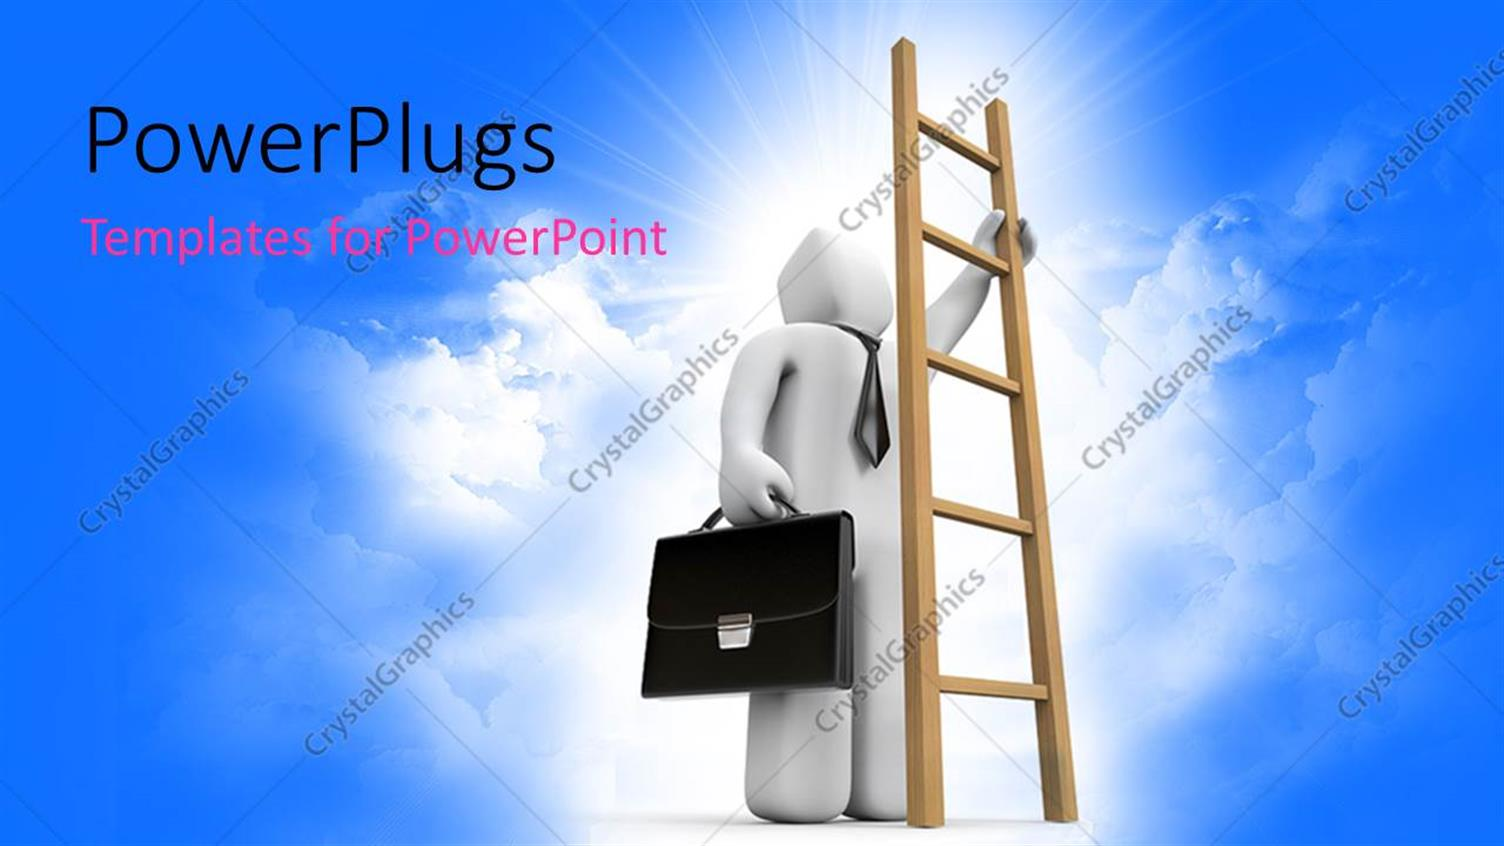 PowerPoint Template Displaying a Bluish Background with a Person and a Ladder